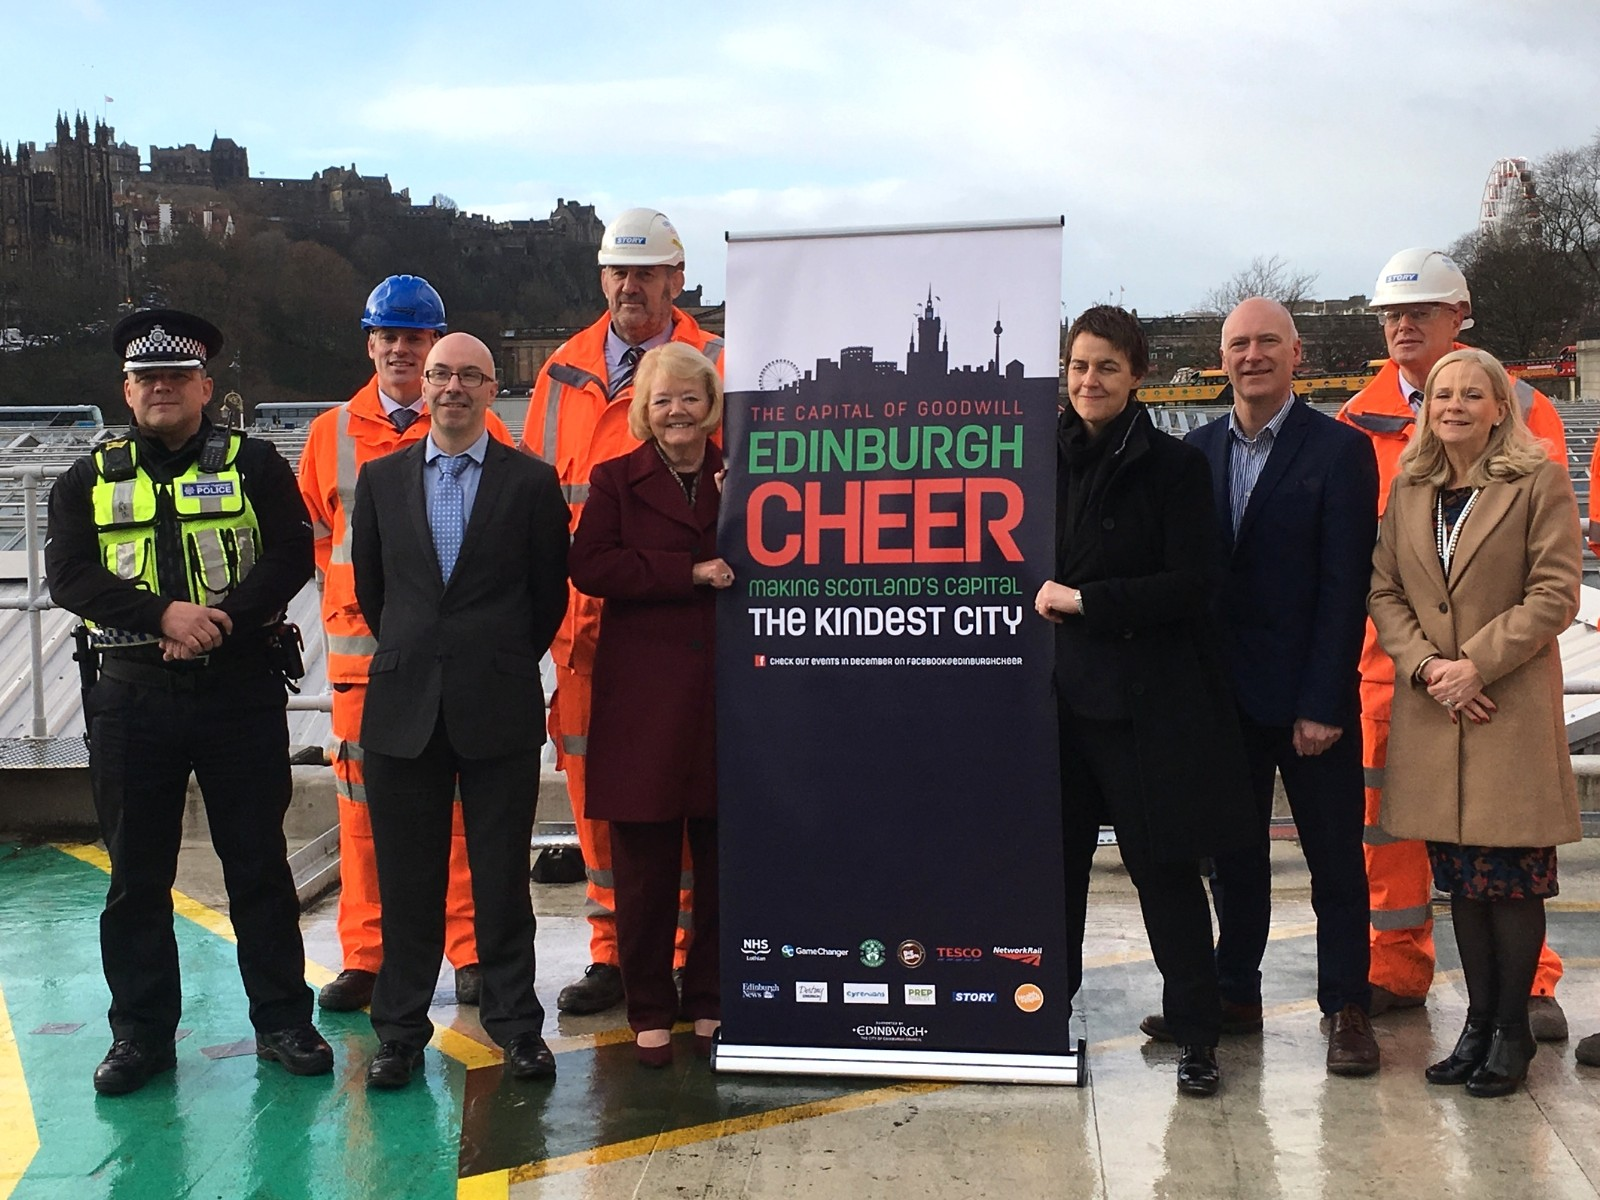 » Big Hearts leading Edinburgh Cheer campaign for the 2nd year!